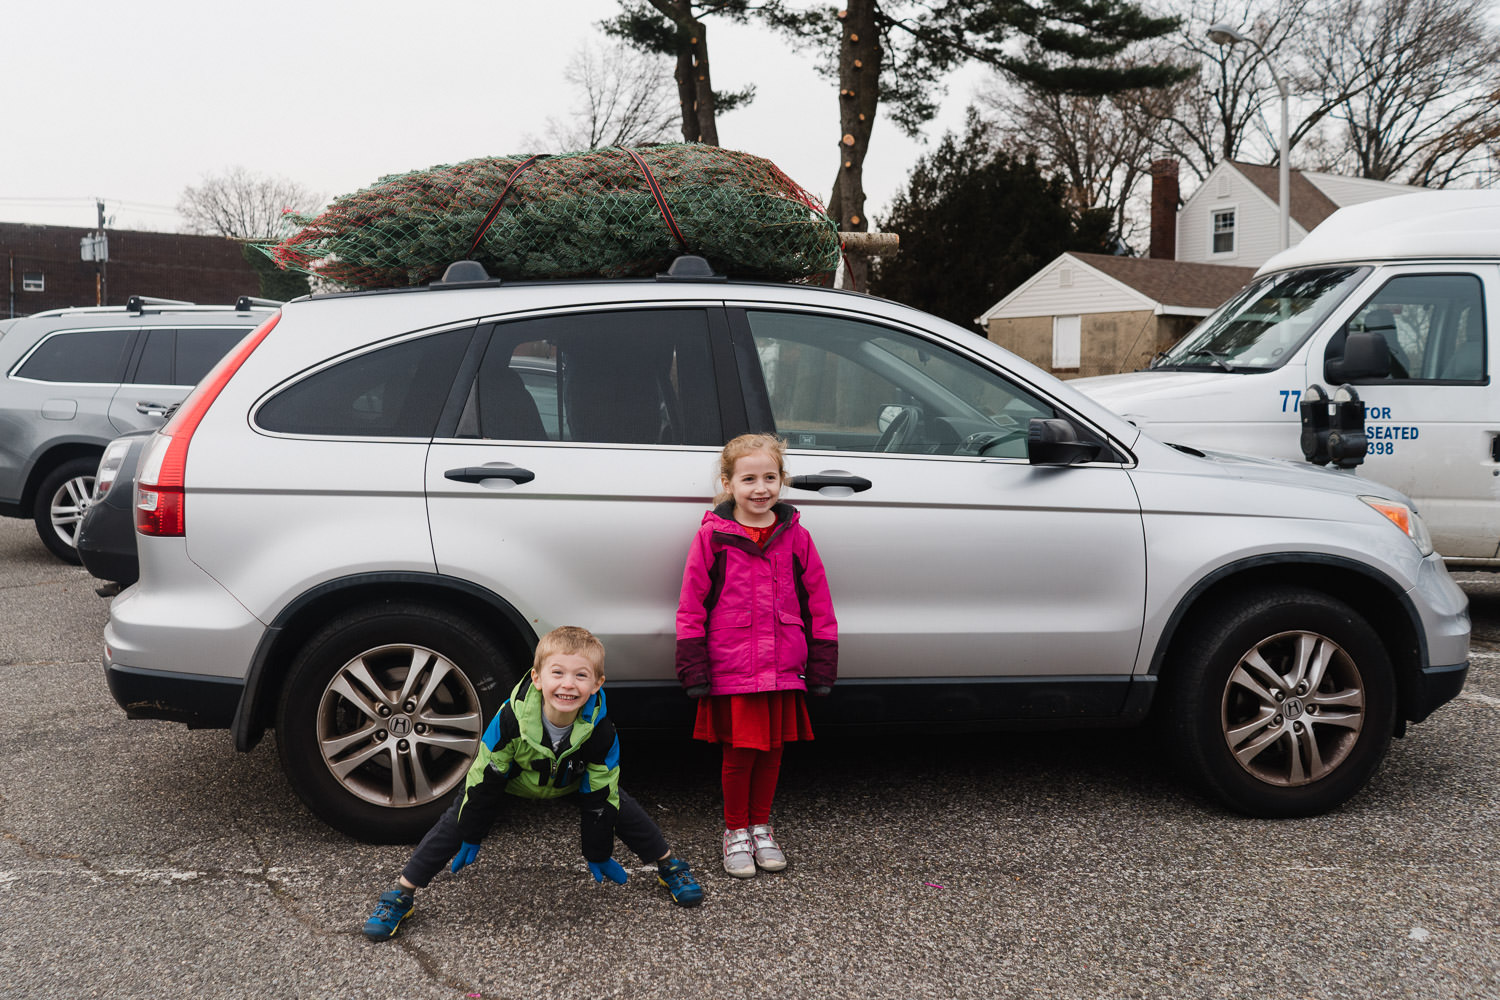 Two children stand in front of a car with a freshly cut Christmas tree on top.